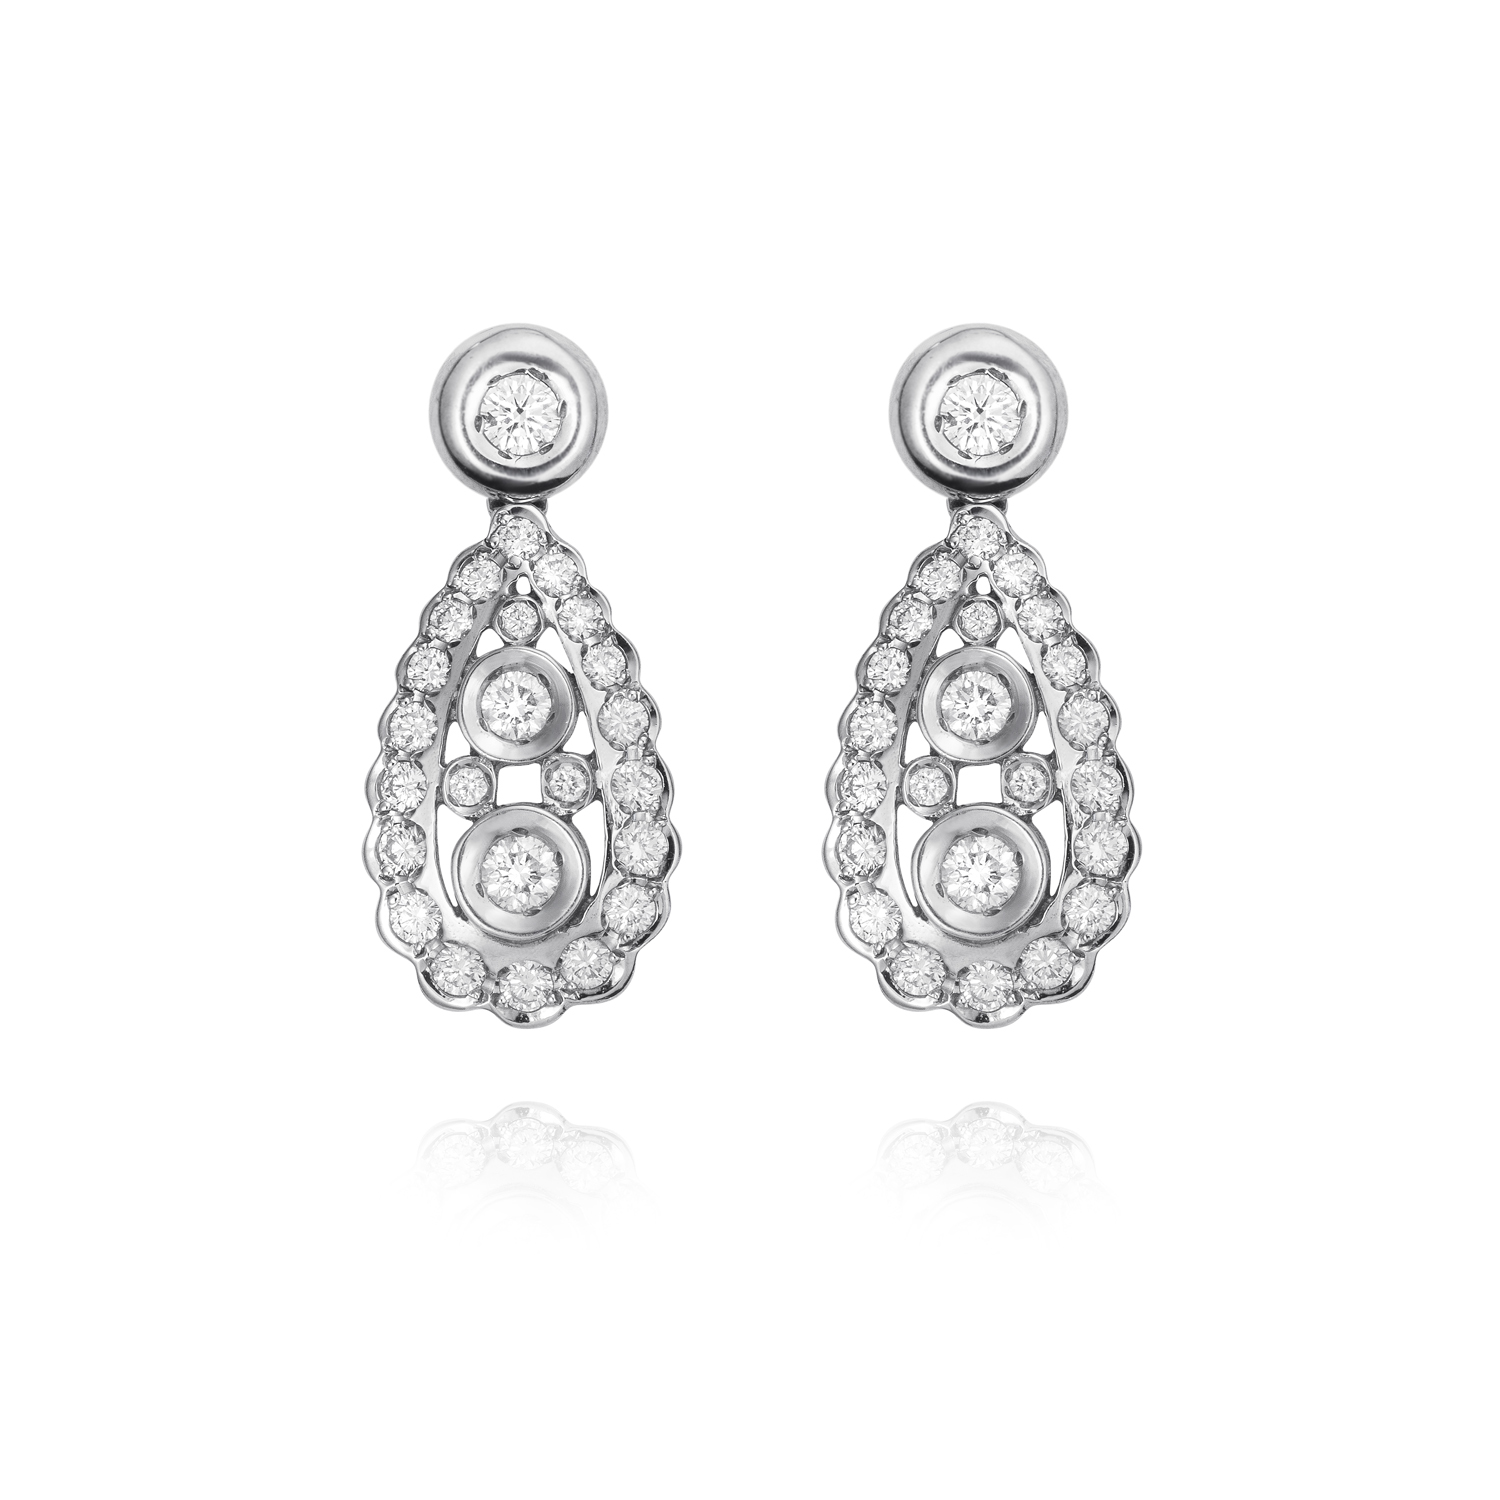 Sensi joyas jewellery Granada silver engagement18K GOLD EARRINGS DIAMONDS 1.70 CTS